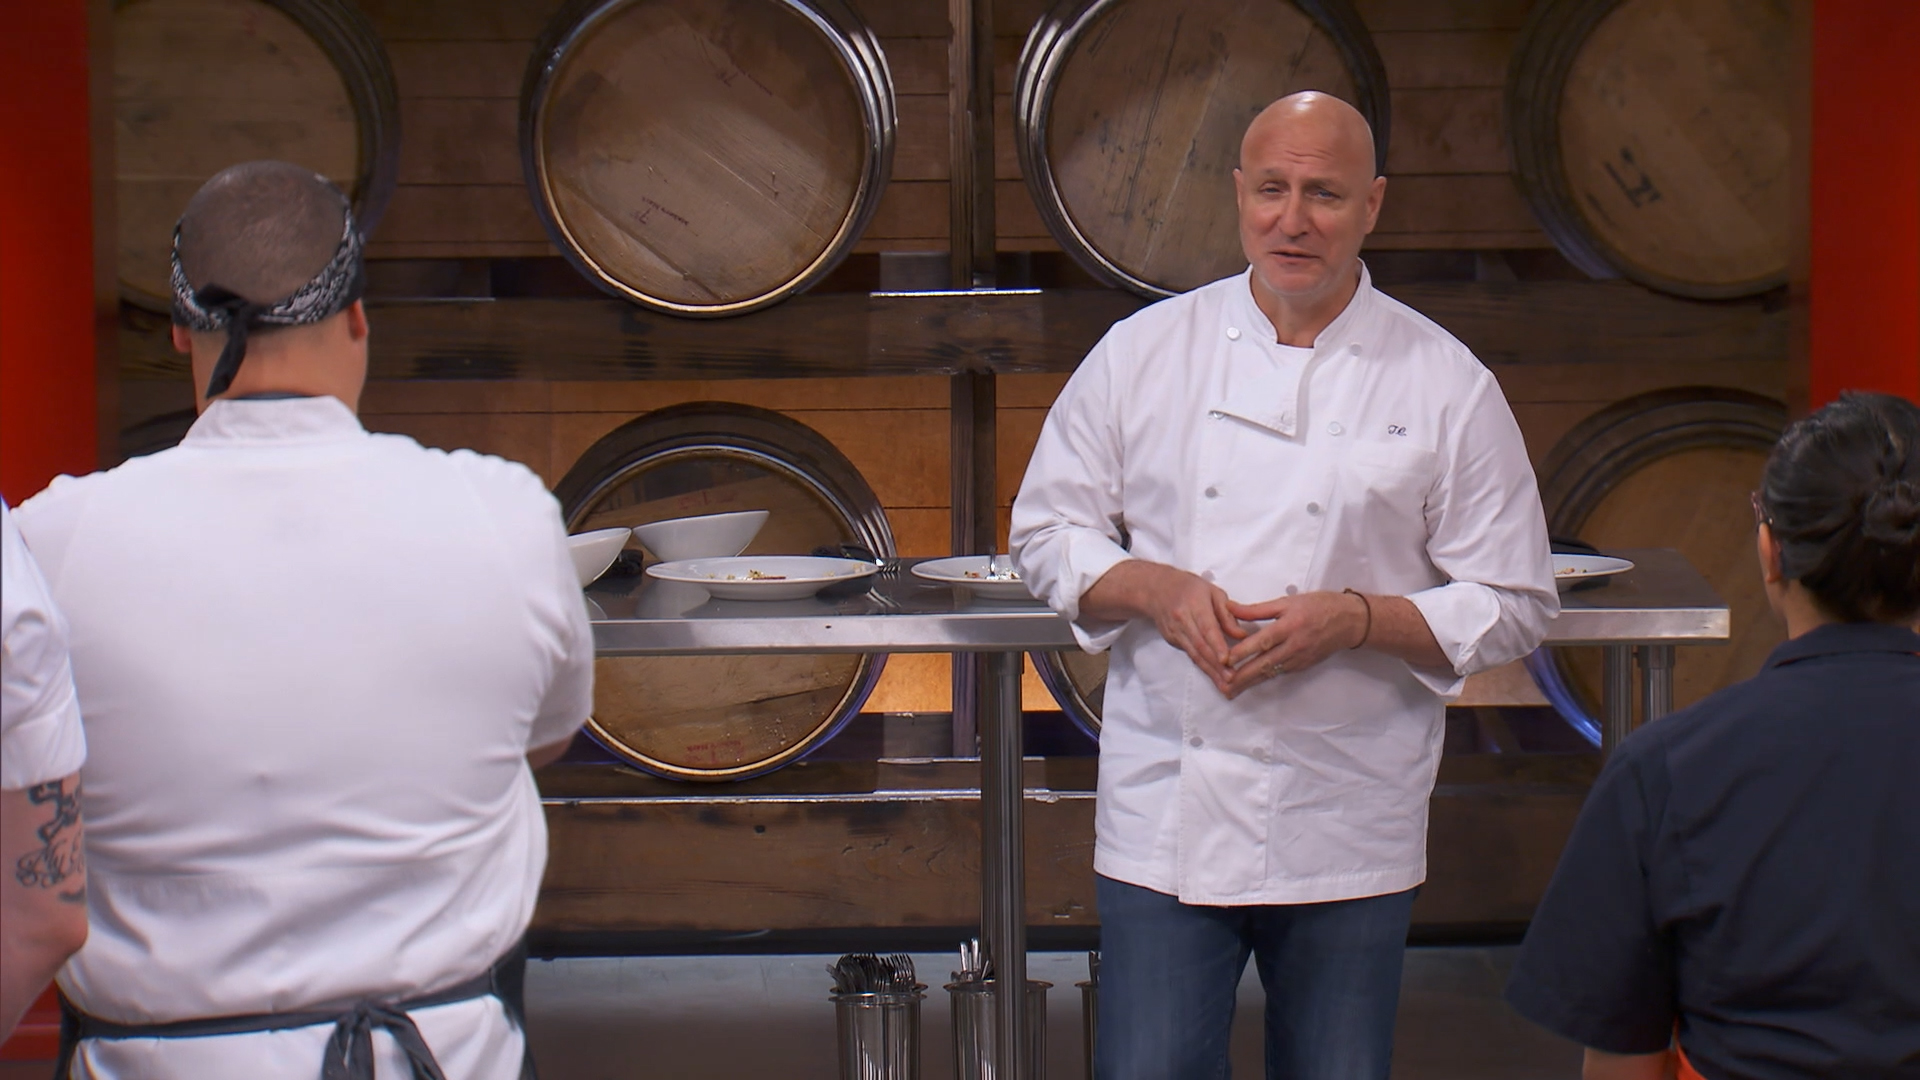 The Last Chance Kitchen Winner Re-Enters the Top Chef Competition!